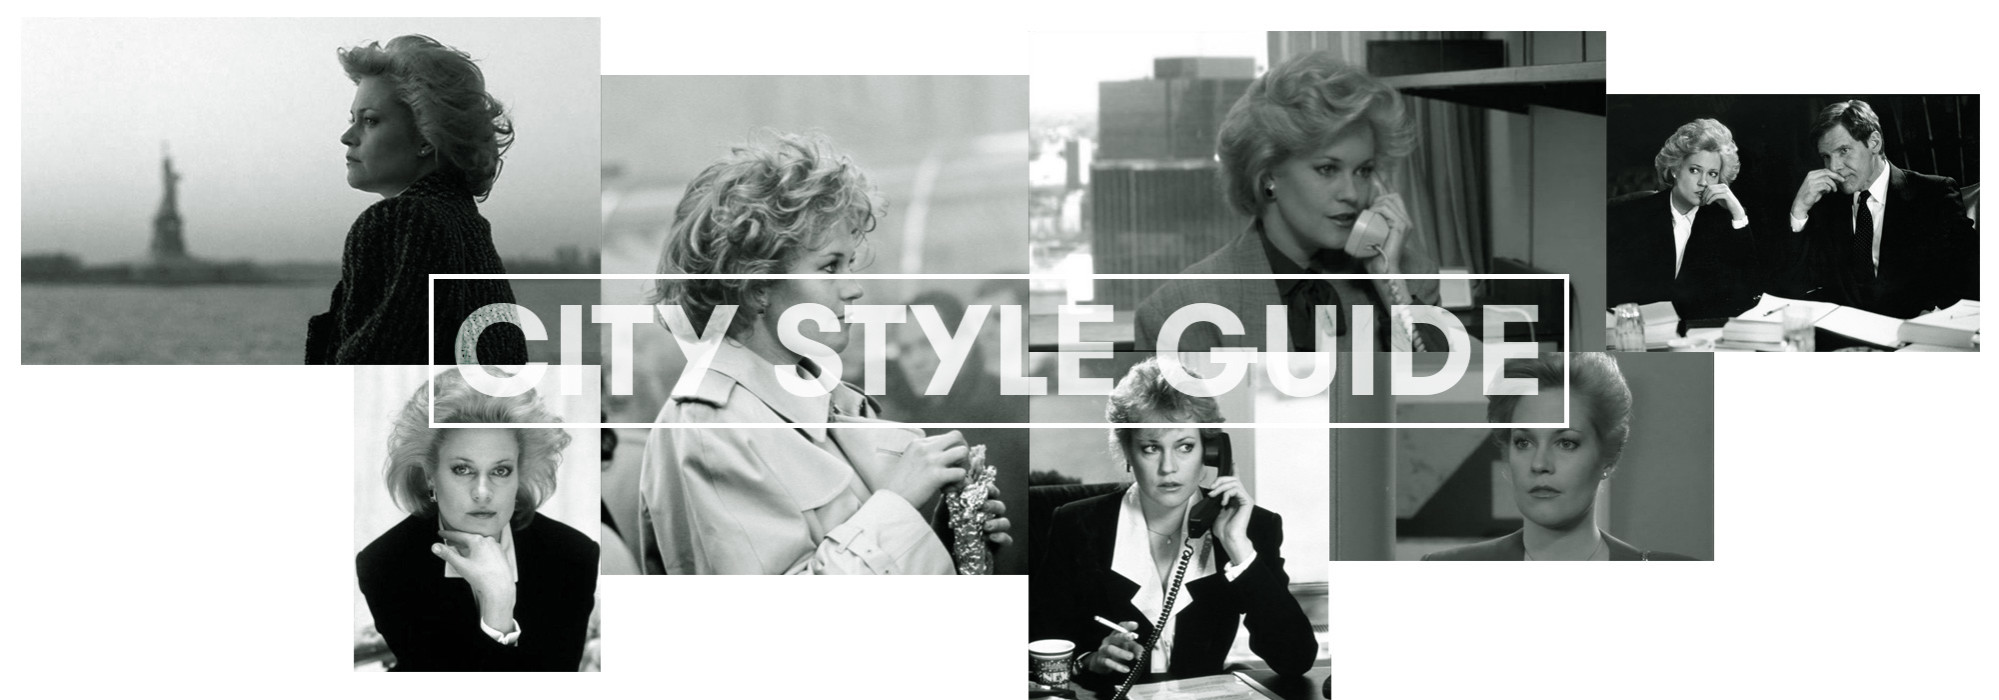 c9b04d473c City style guide: generazione working girl